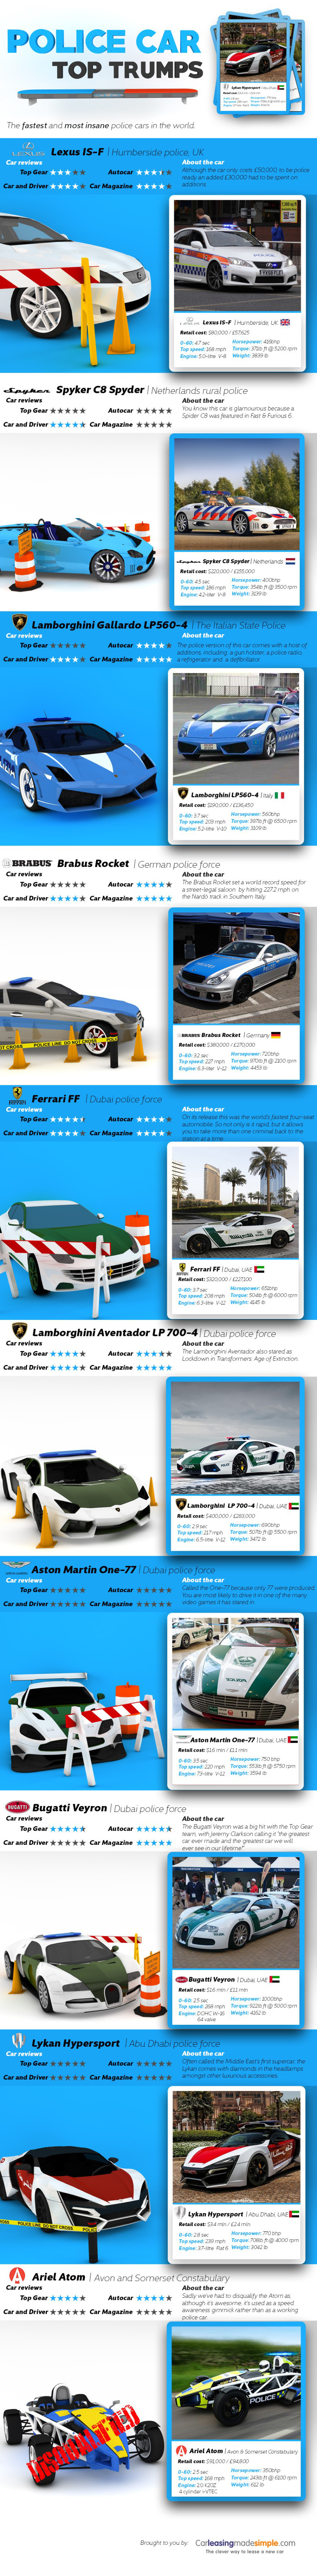 Police Car Website >> Police Car Top Trumps Information Is Beautiful Awards